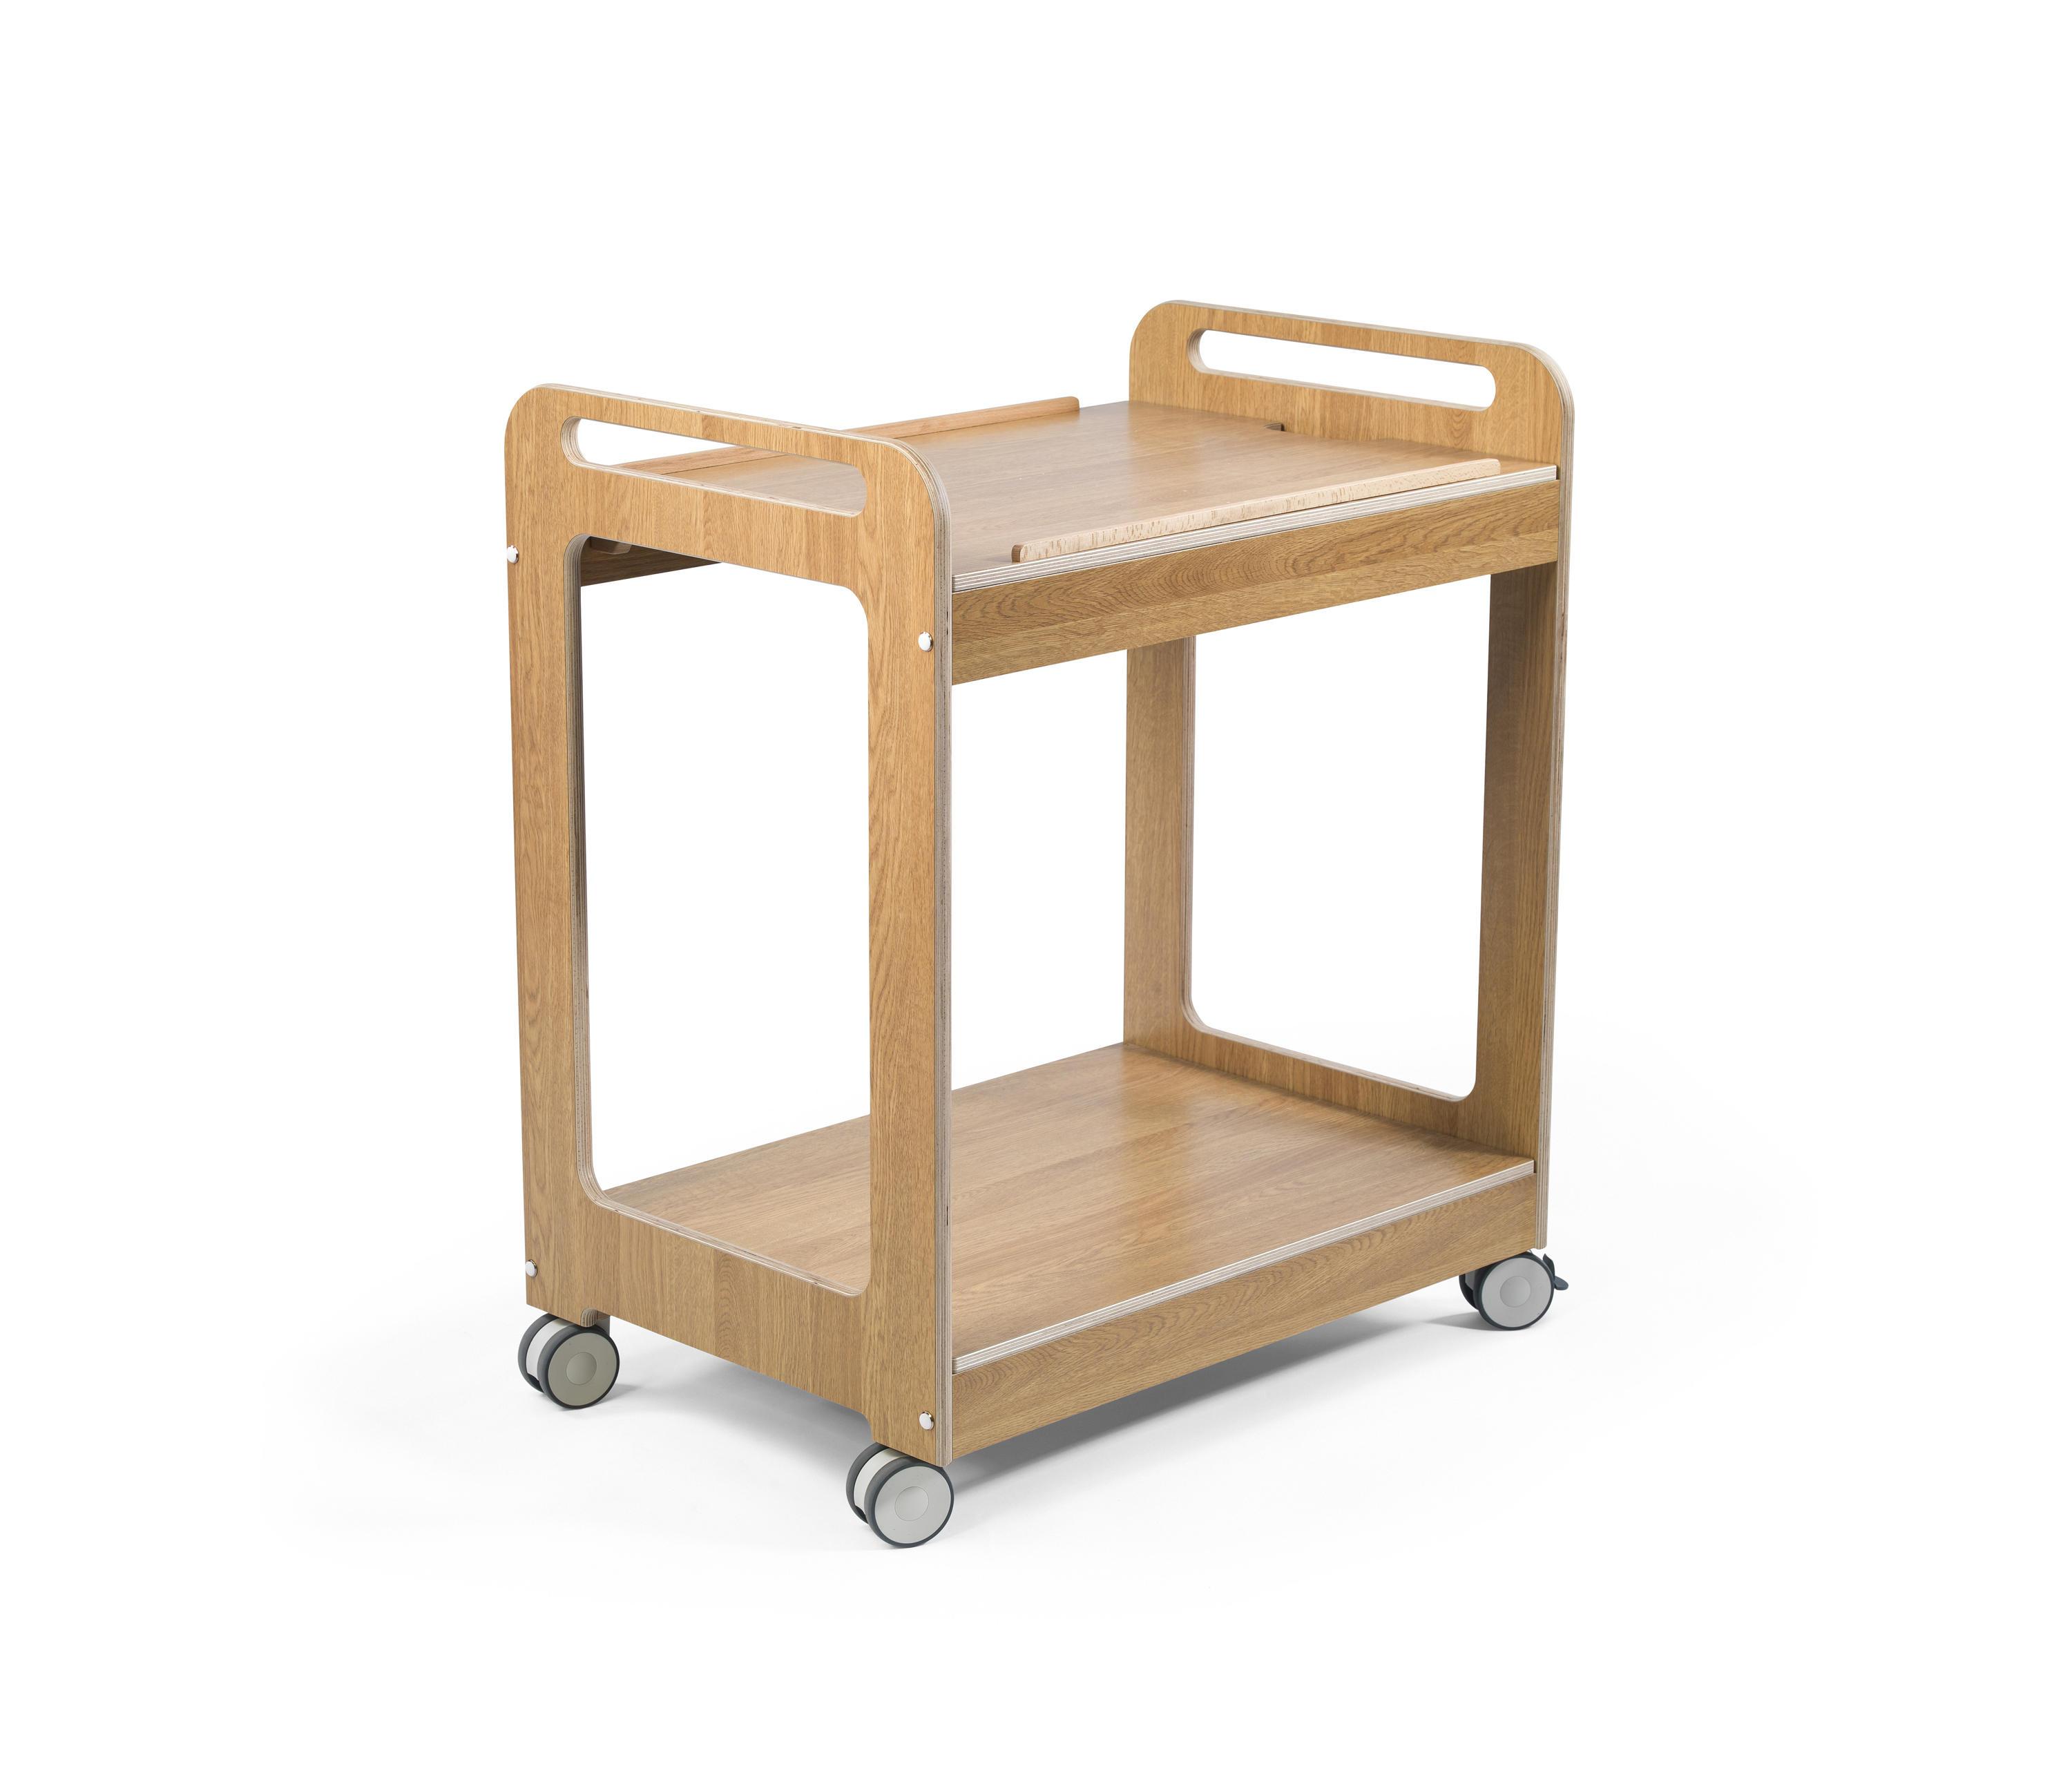 Charmant HM280 Trolley Table By Helland | Trolleys ...